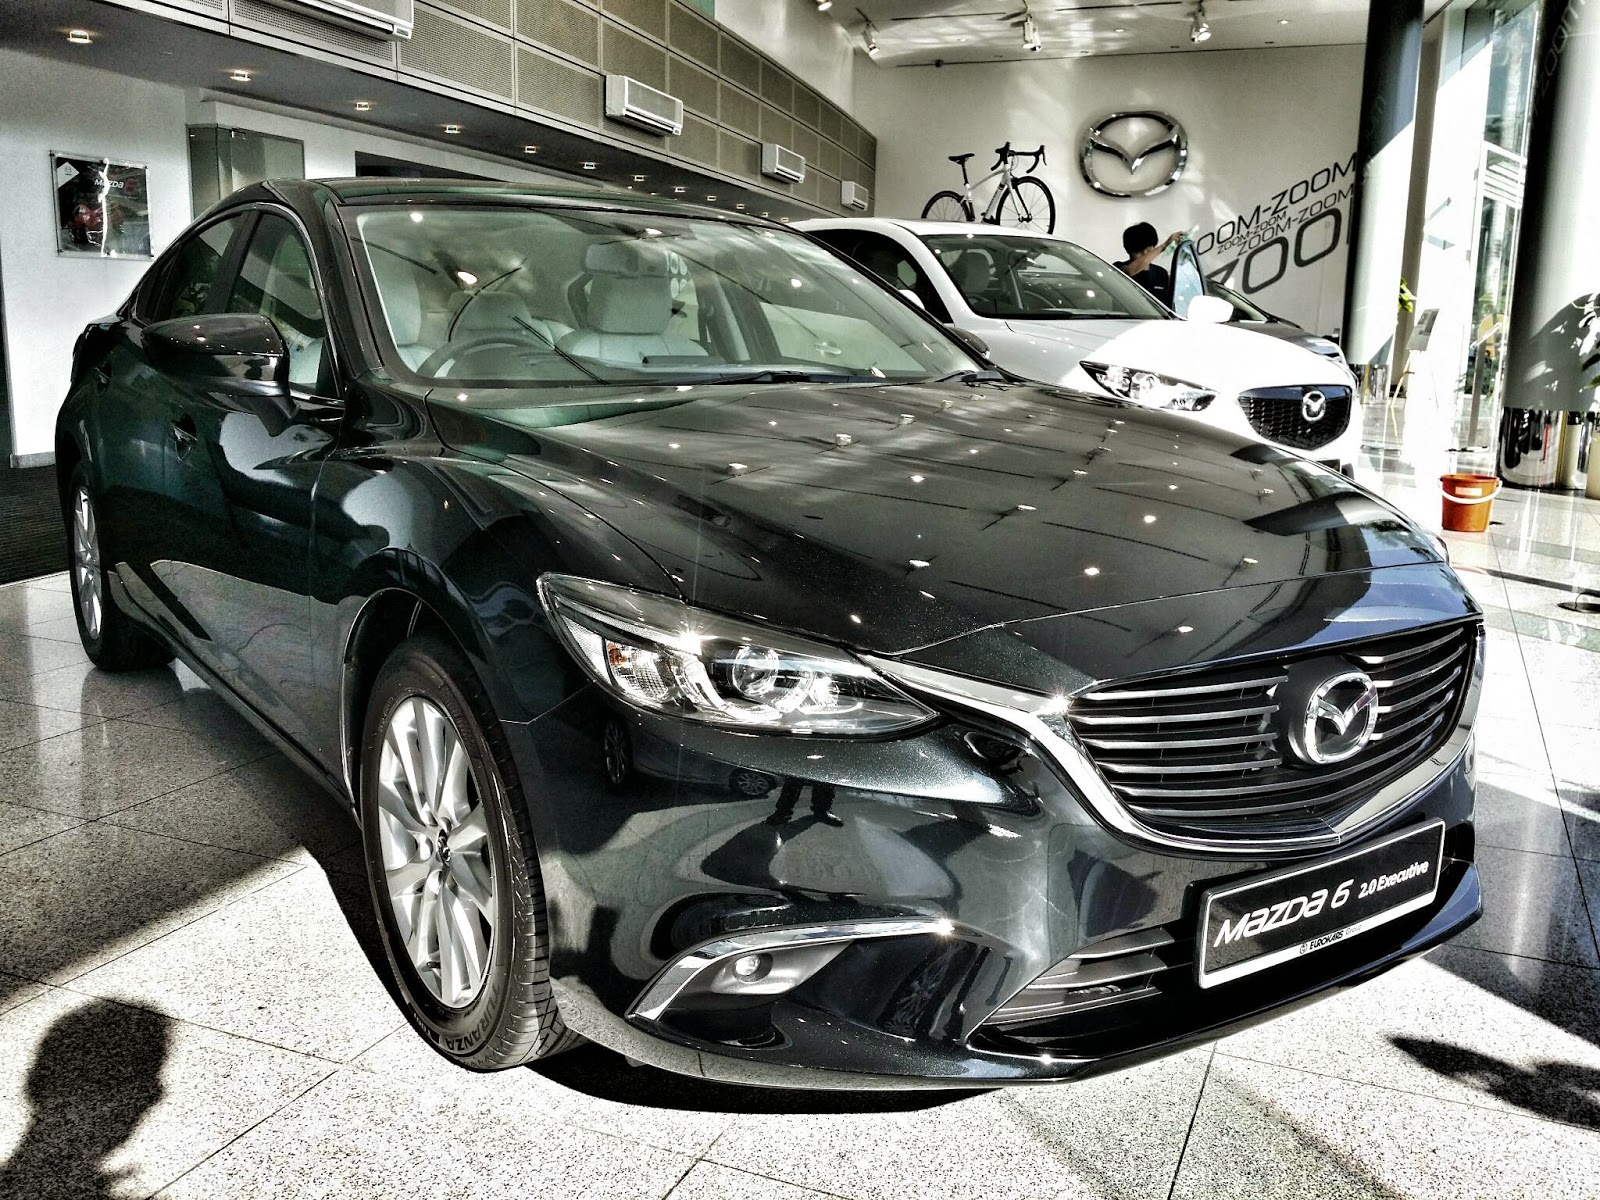 Today the mazda 6 has gained a slight facelift with some new touch up to the exterior as well as the interior to keep up with the mazda 3 and 2